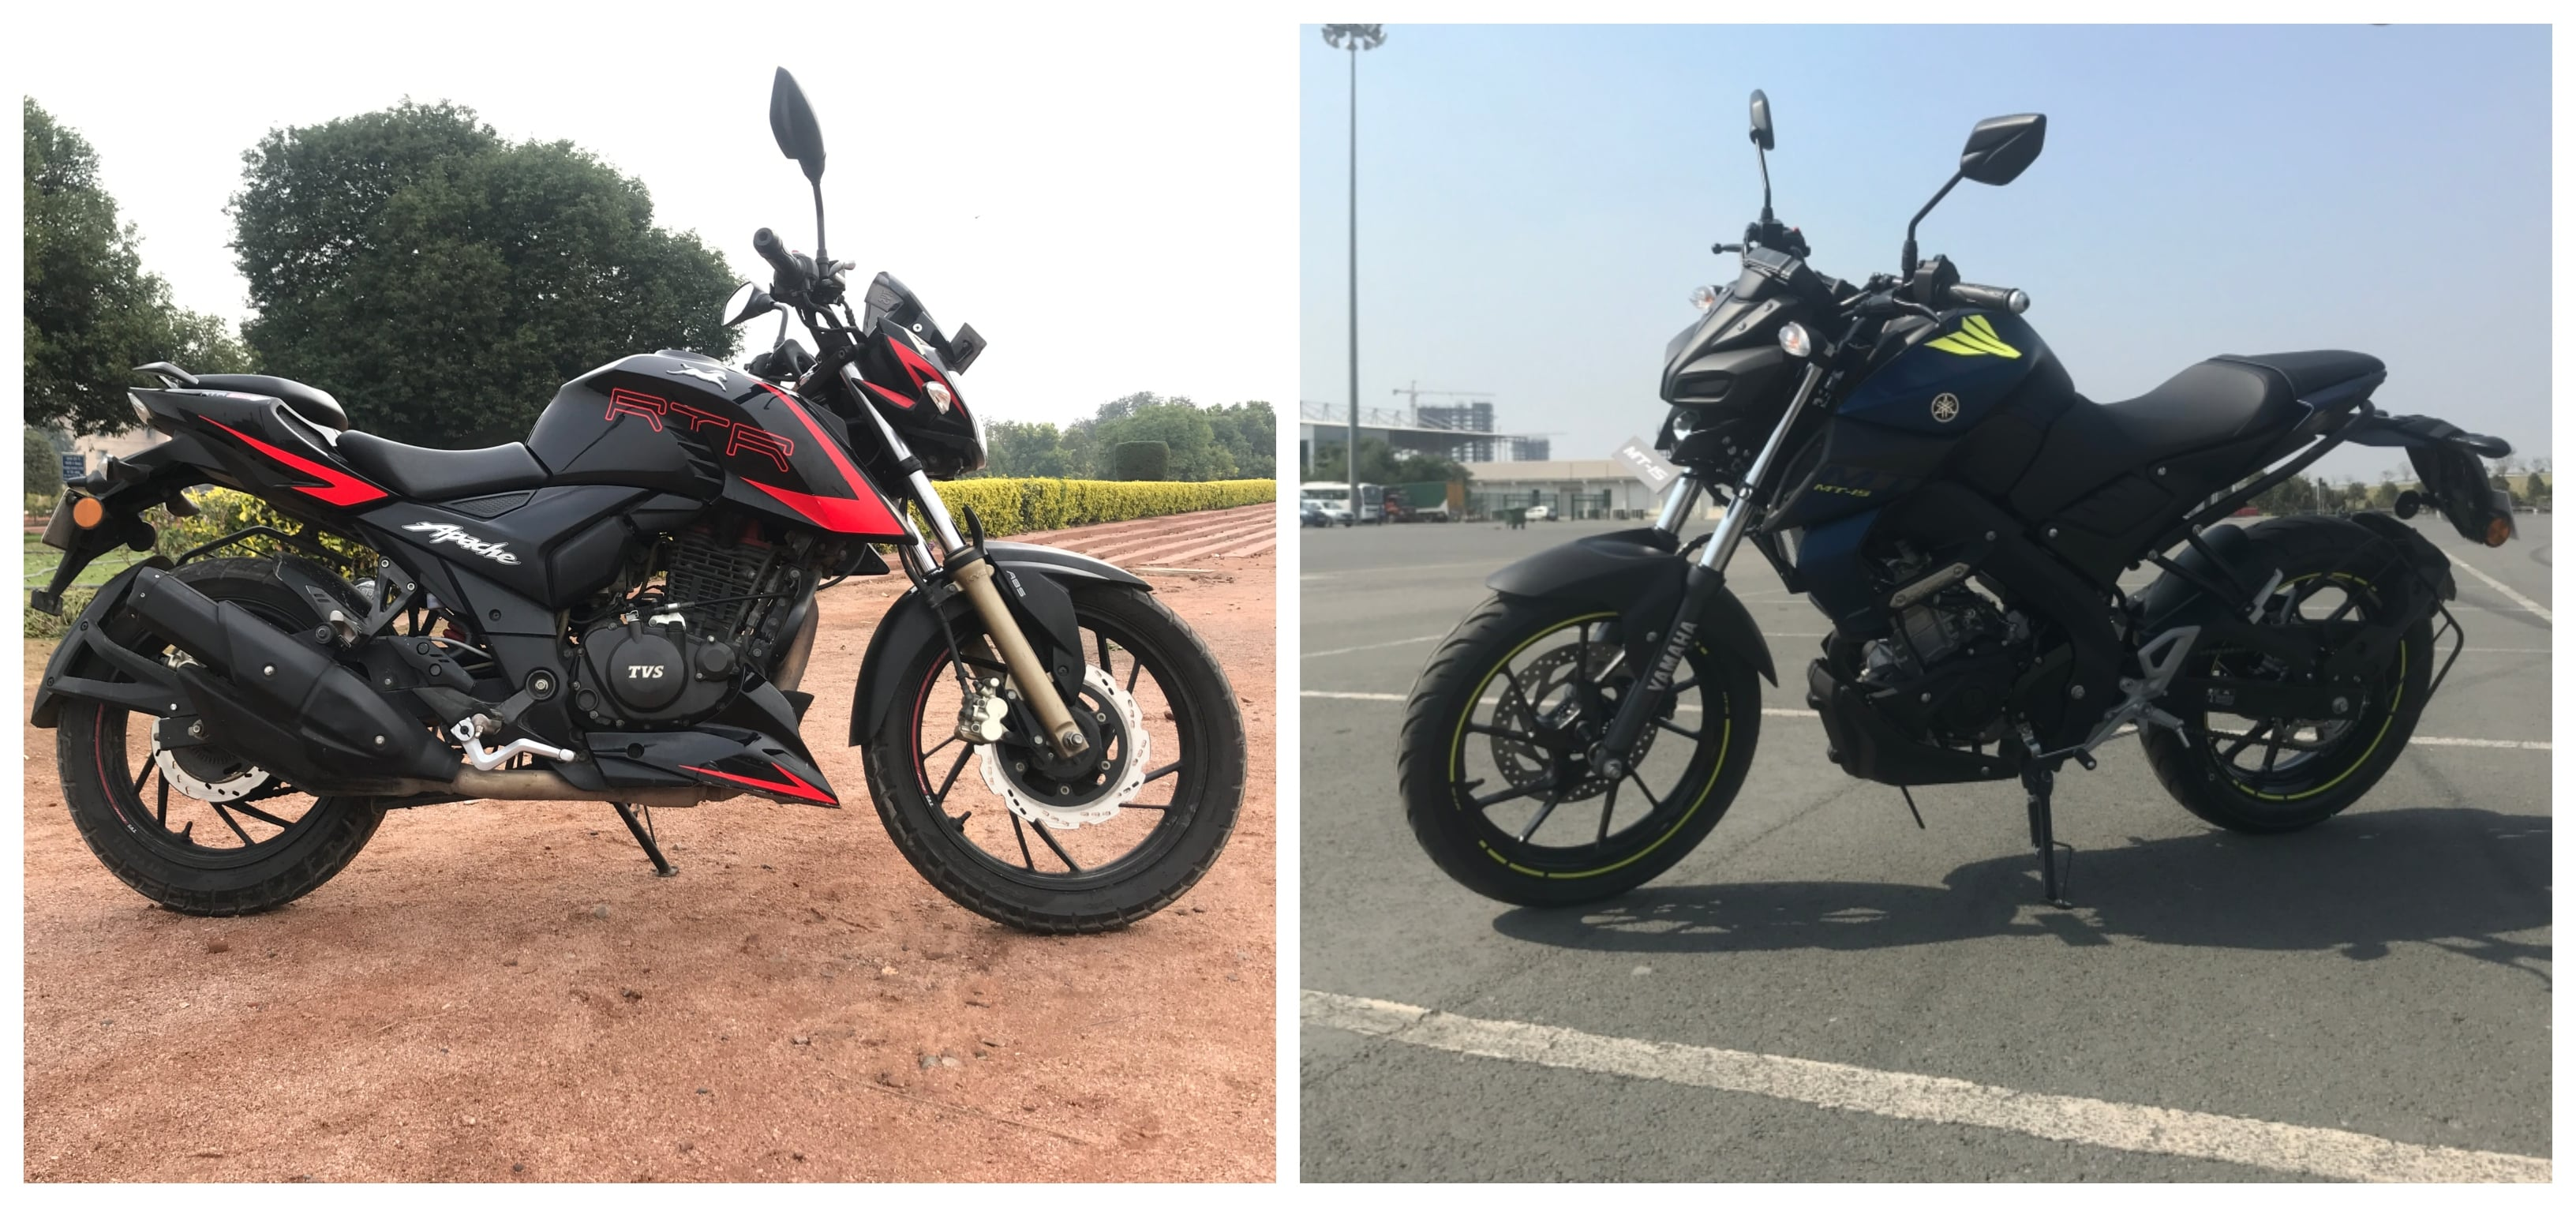 Fabulous Yamaha Mt 15 Vs Tvs Apache Rtr 200 4V Detailed Comparison Gmtry Best Dining Table And Chair Ideas Images Gmtryco